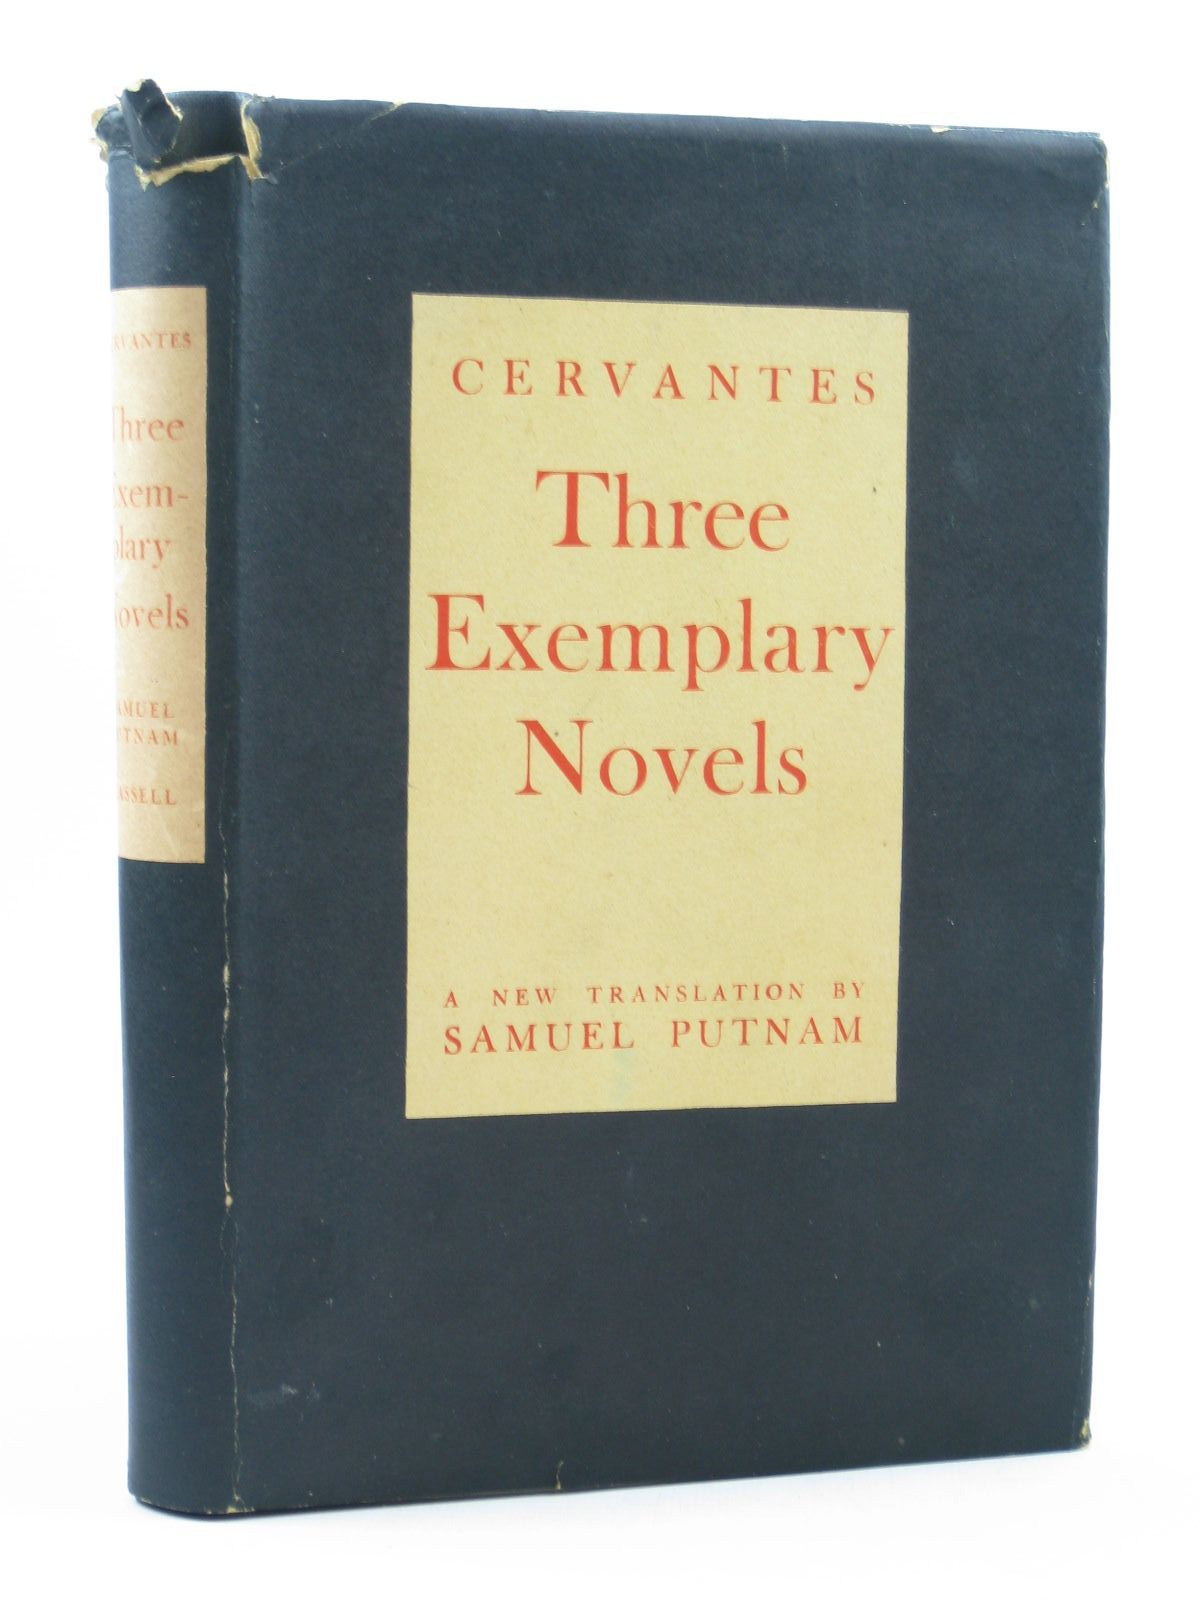 The Exemplary Novels [Illustrated]